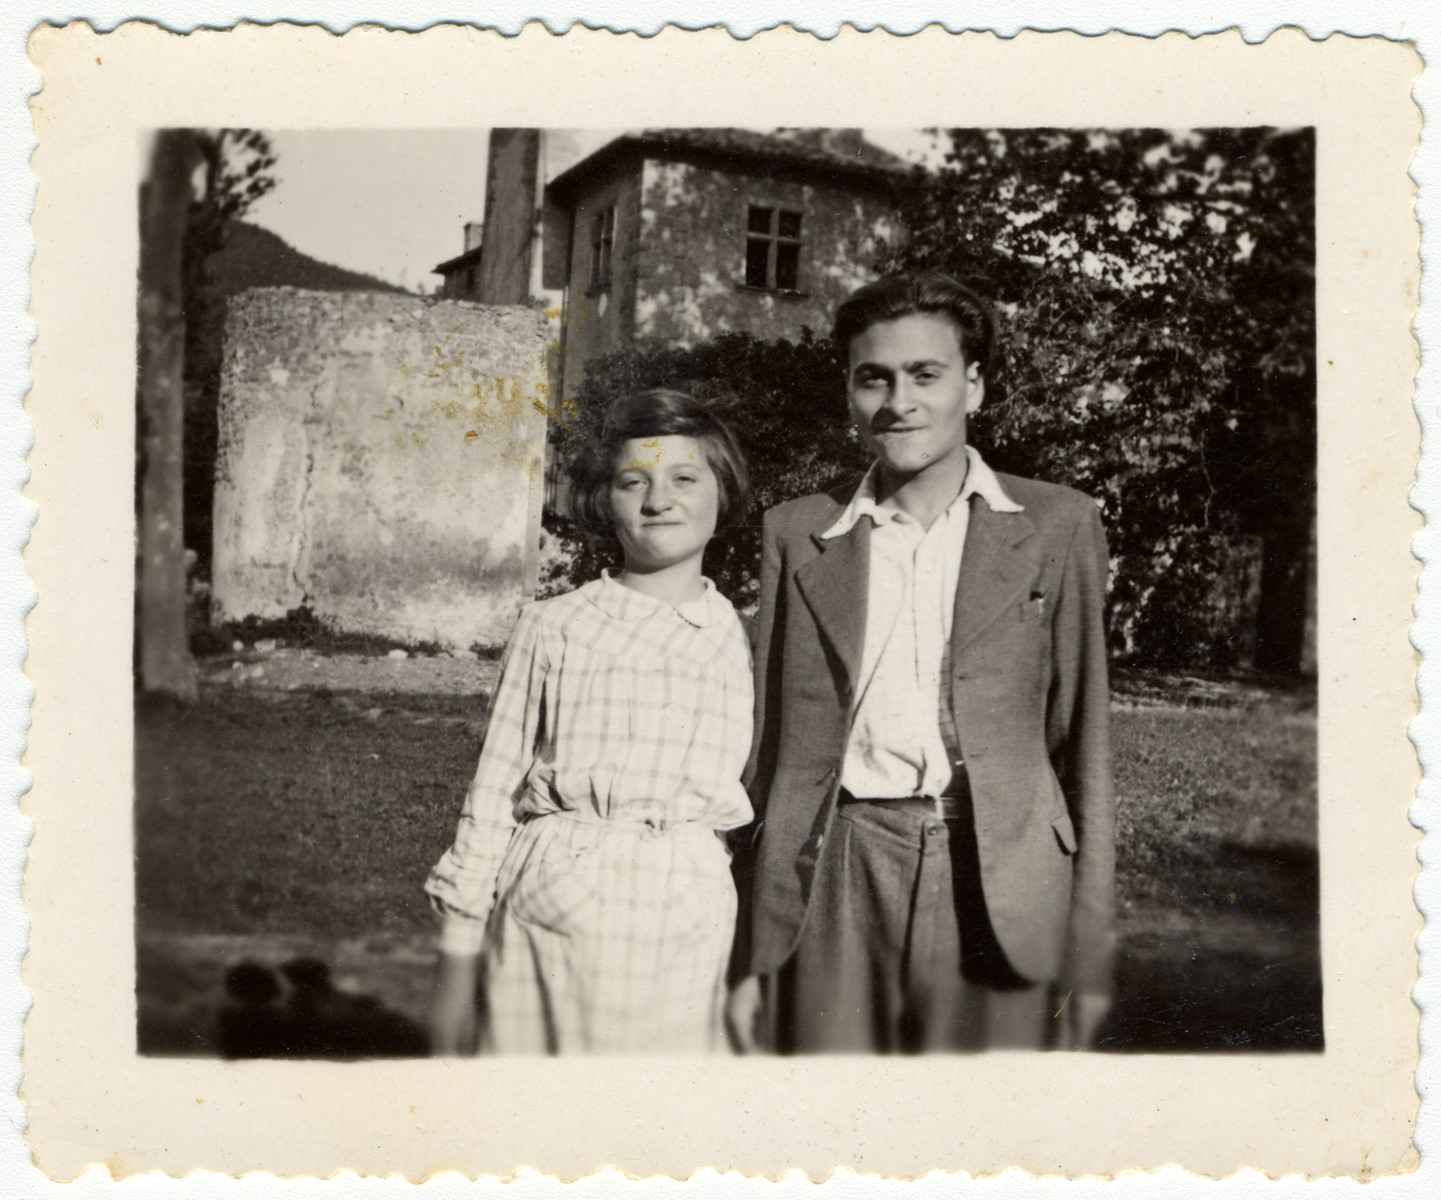 Two siblings stand in front of the children's home of Chateau de la Hille.  Pictured are Martha and Heinz Storosum.